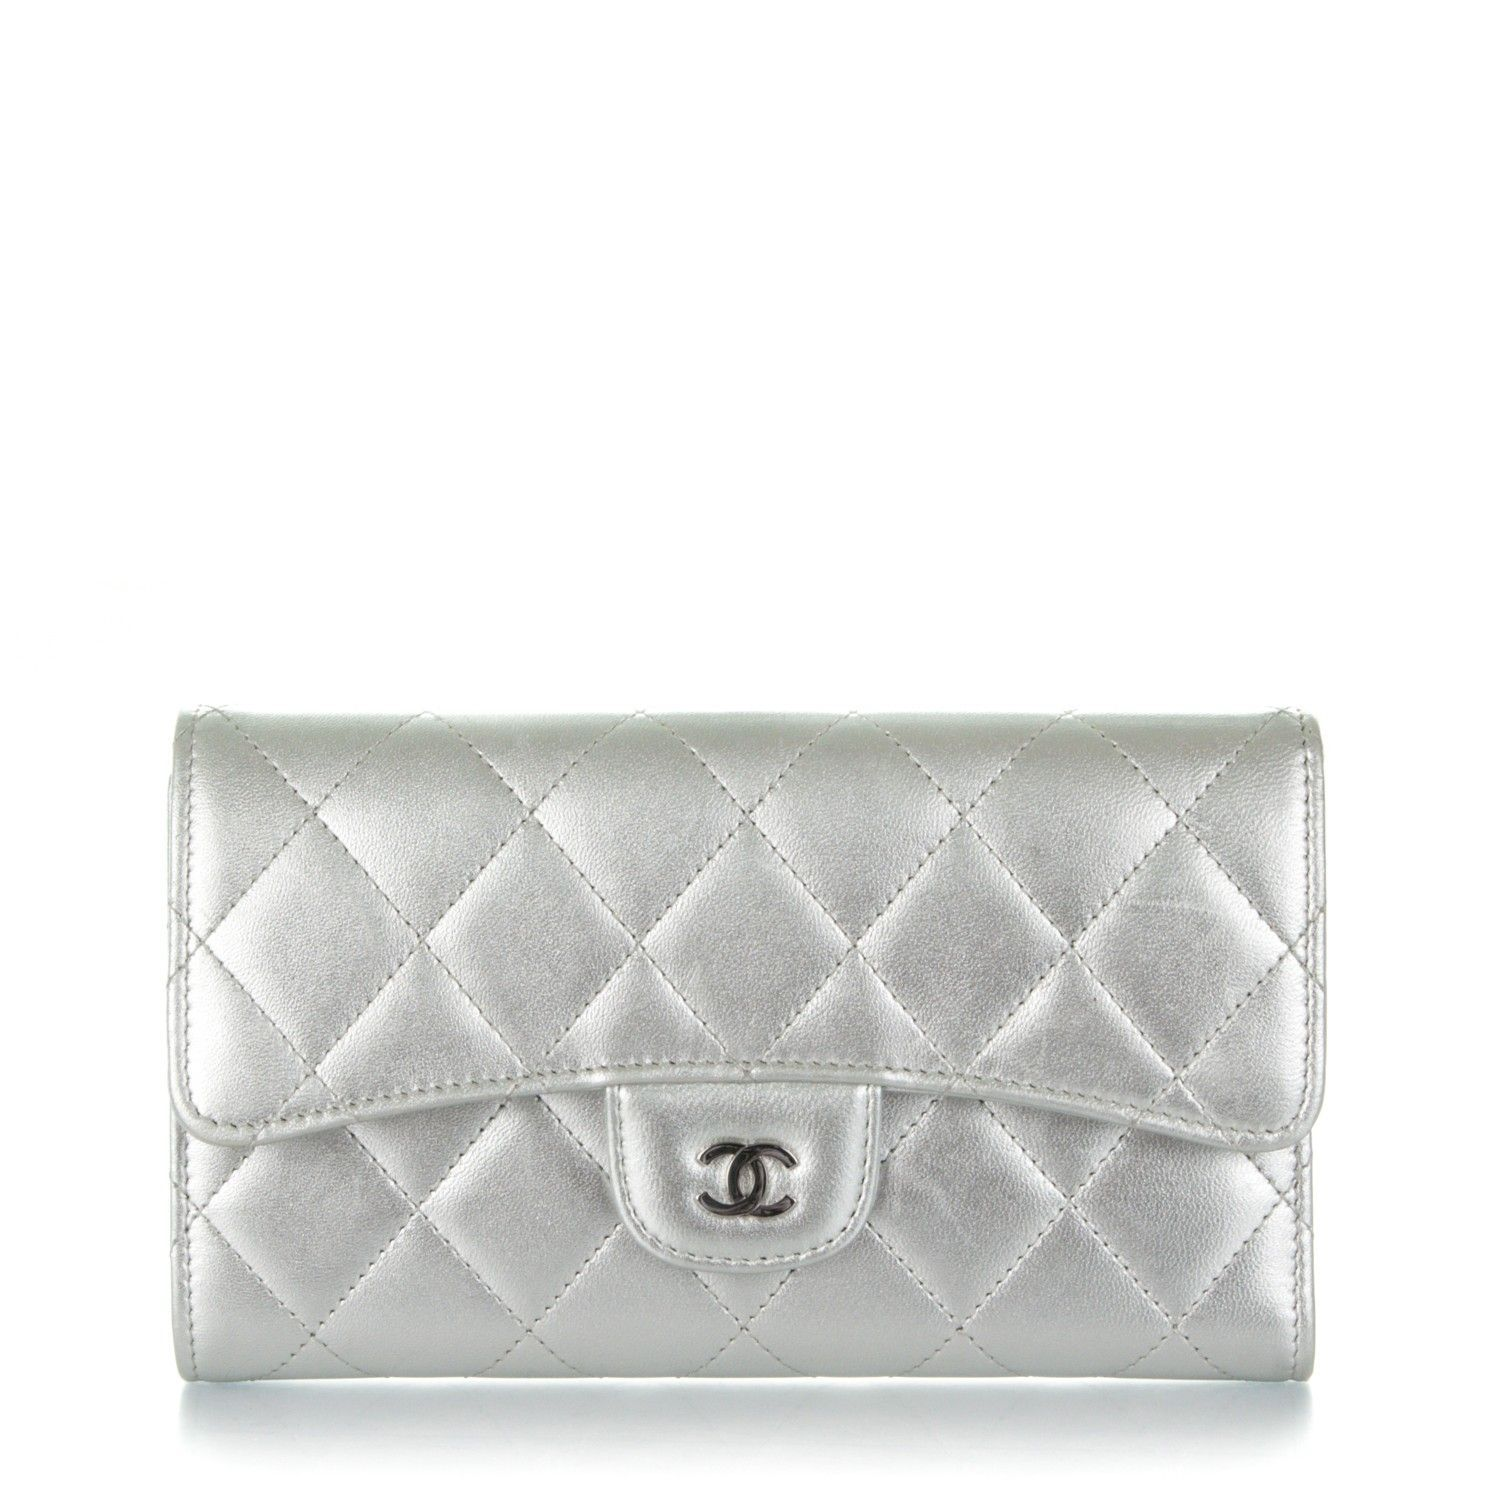 0413650678bd This is an authentic CHANEL Metallic Lambskin Quilted Large Flap Wallet in  Silver. This classic